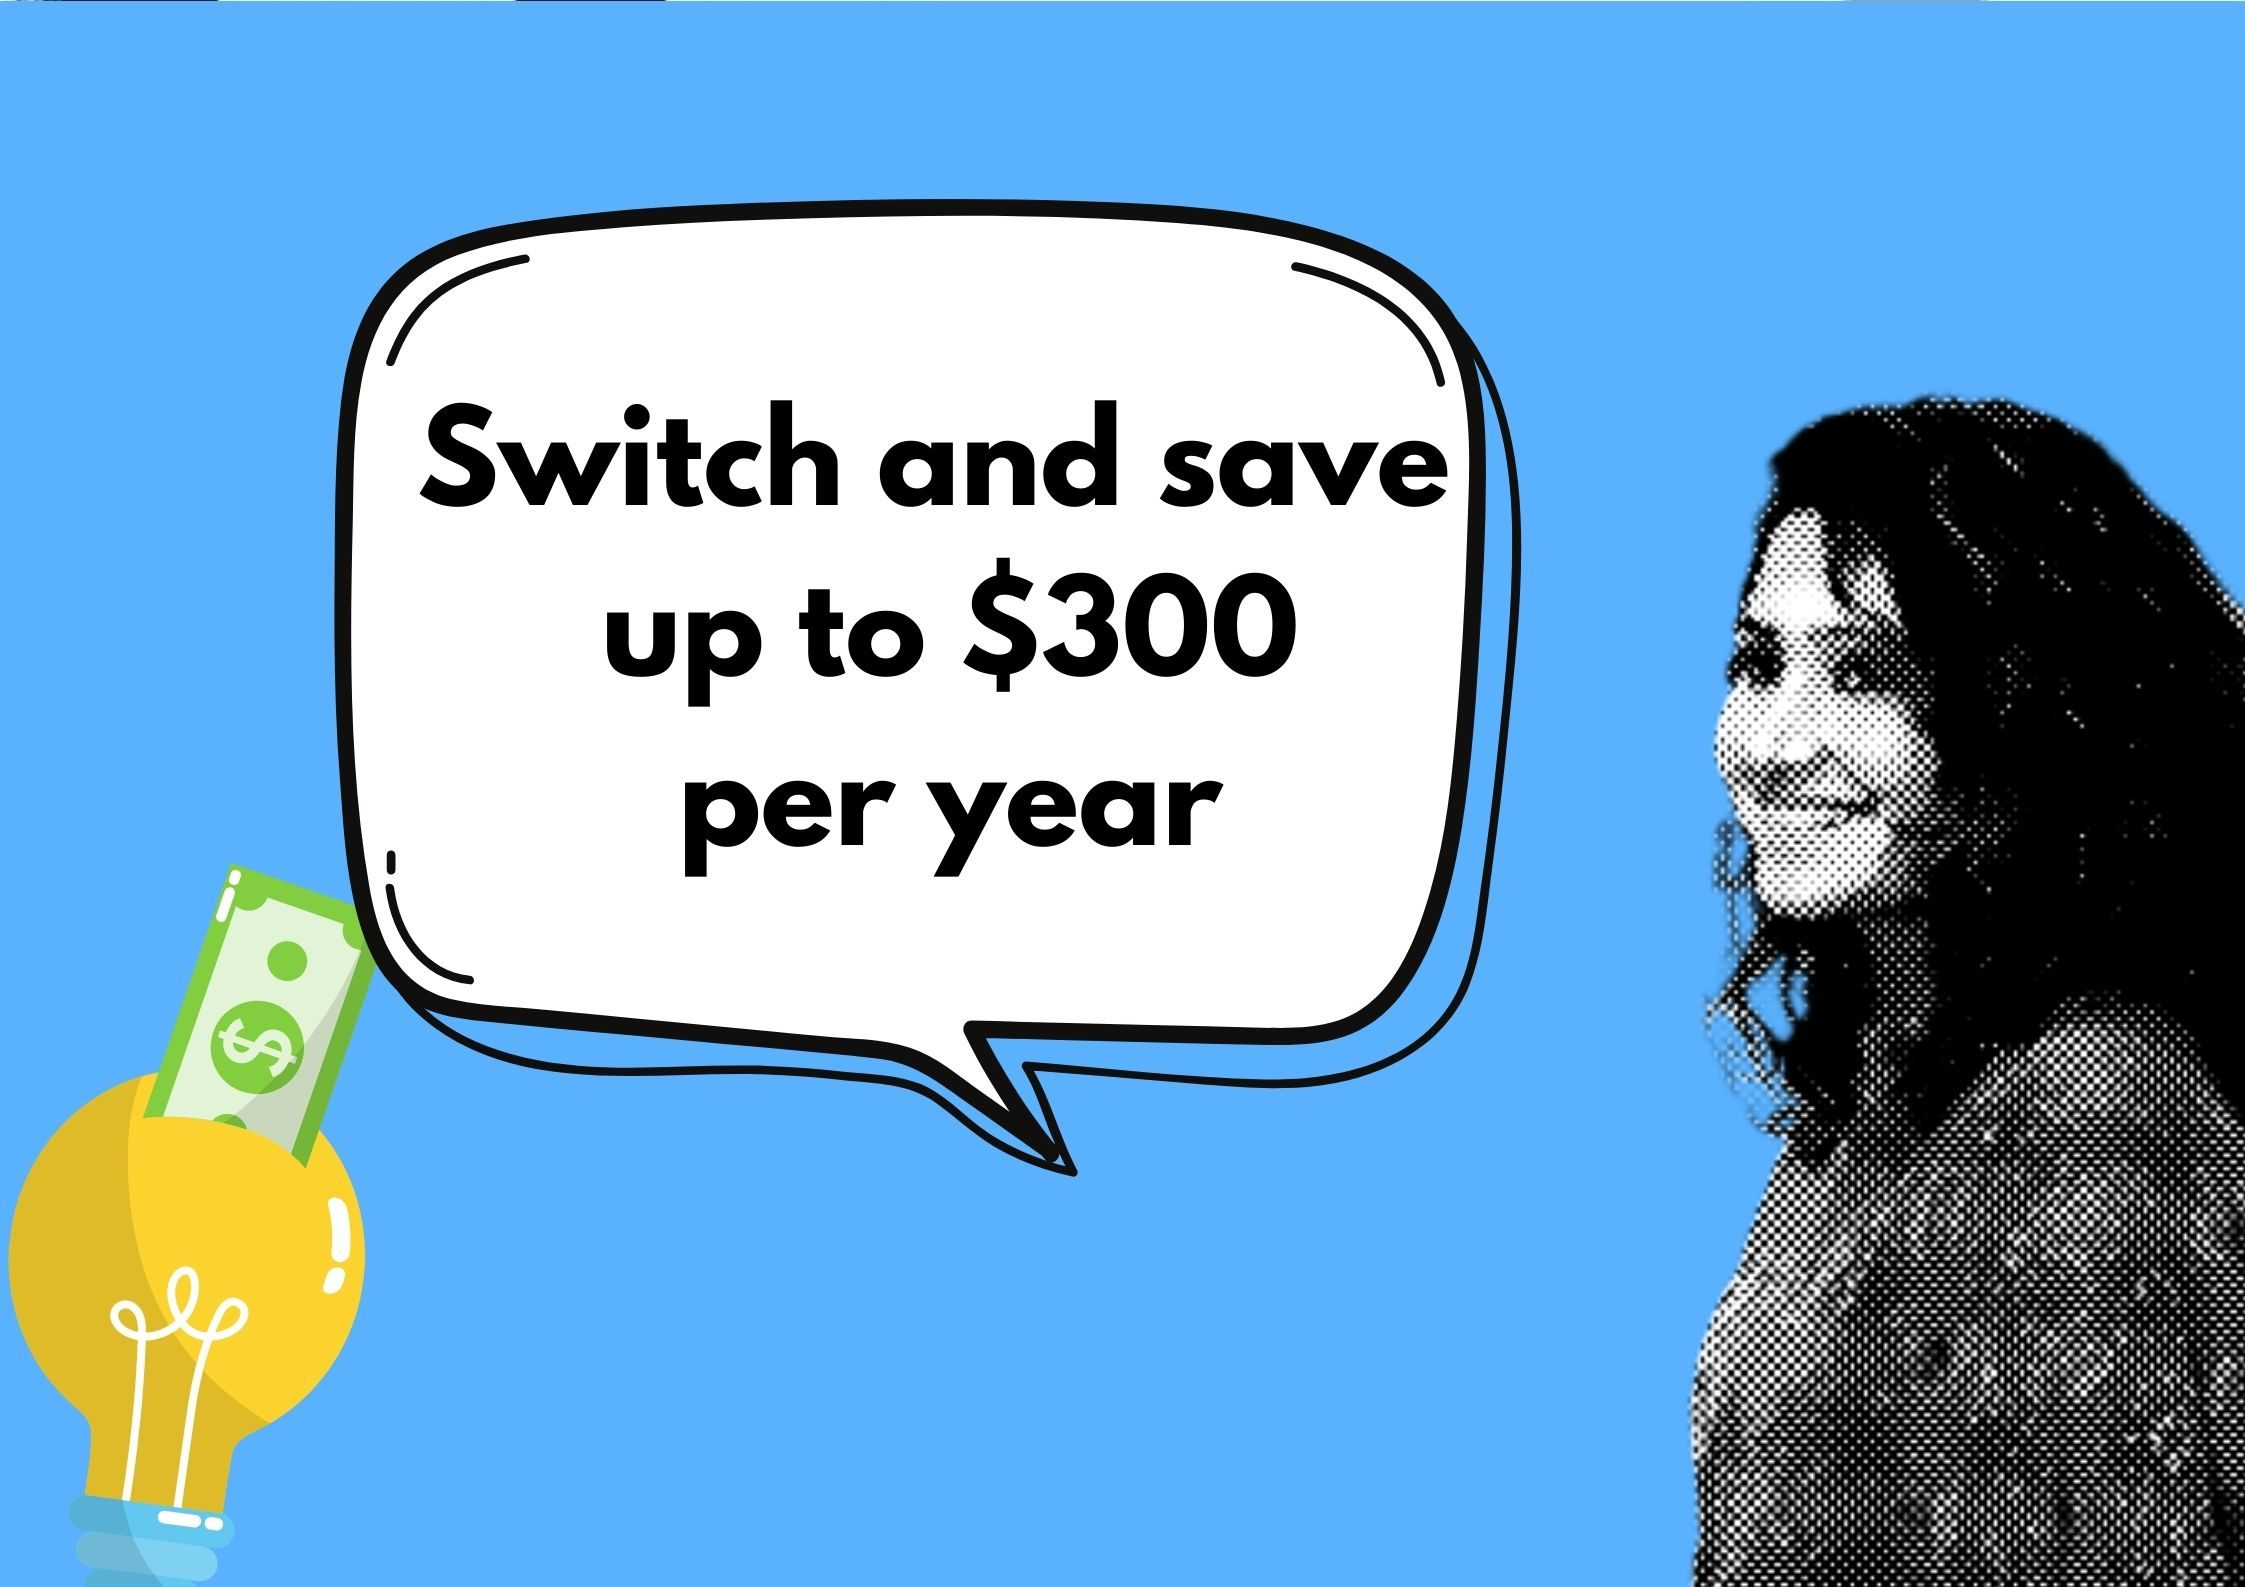 Switch and save $300 from your energy bill, Mariam Gabaji